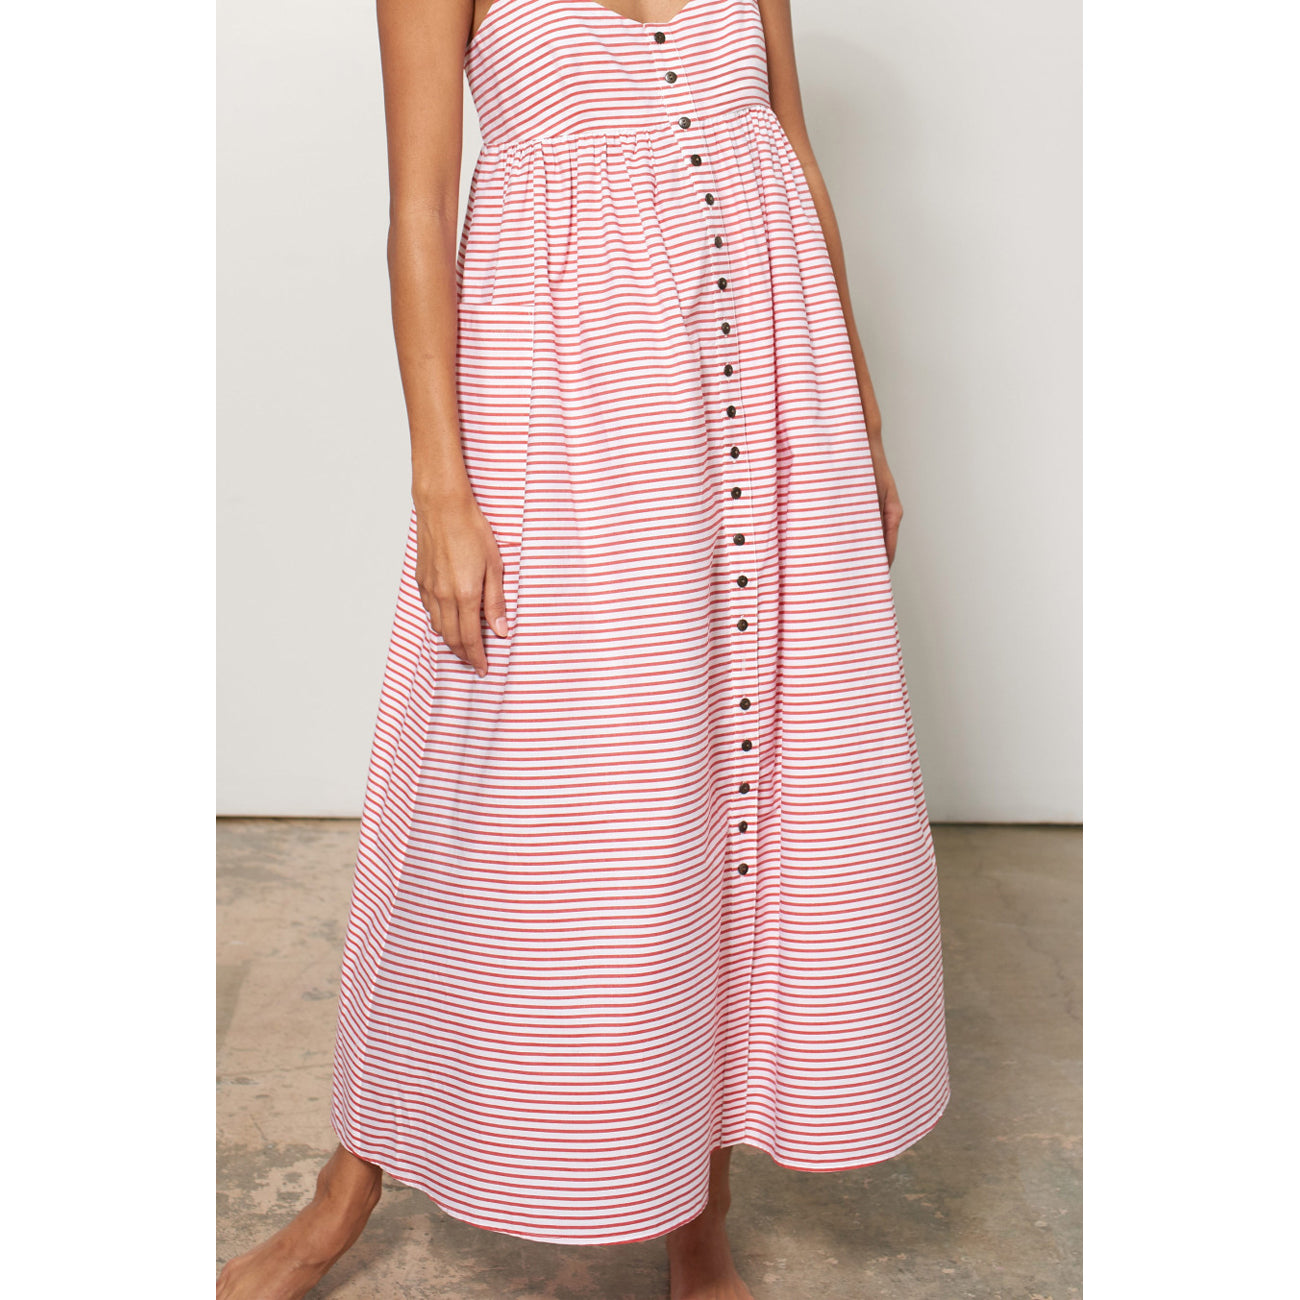 Mara Hoffman Orla Dress in Red & White Cabana Stripe